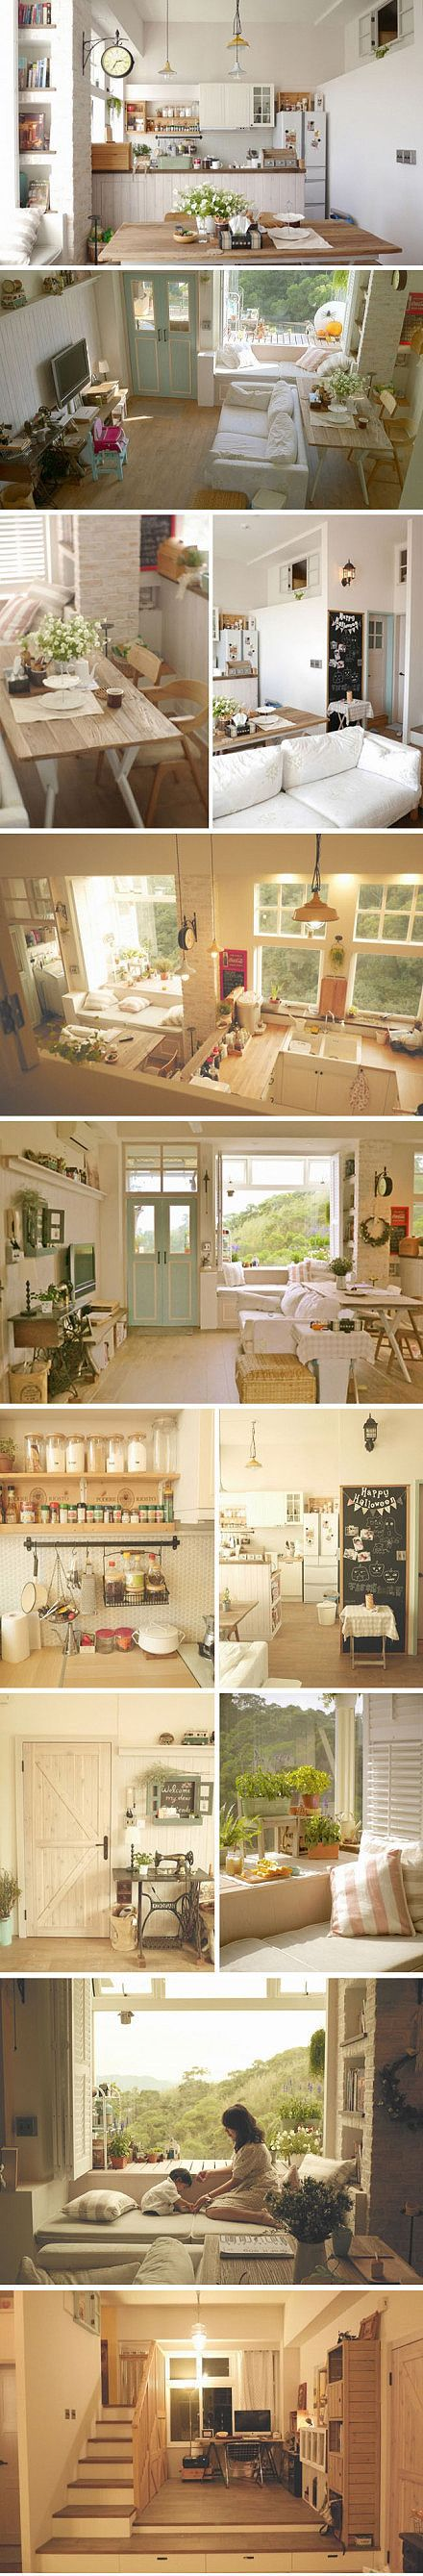 1000+ images about OAKVIEW - KITCHEN/DINING on Pinterest ...